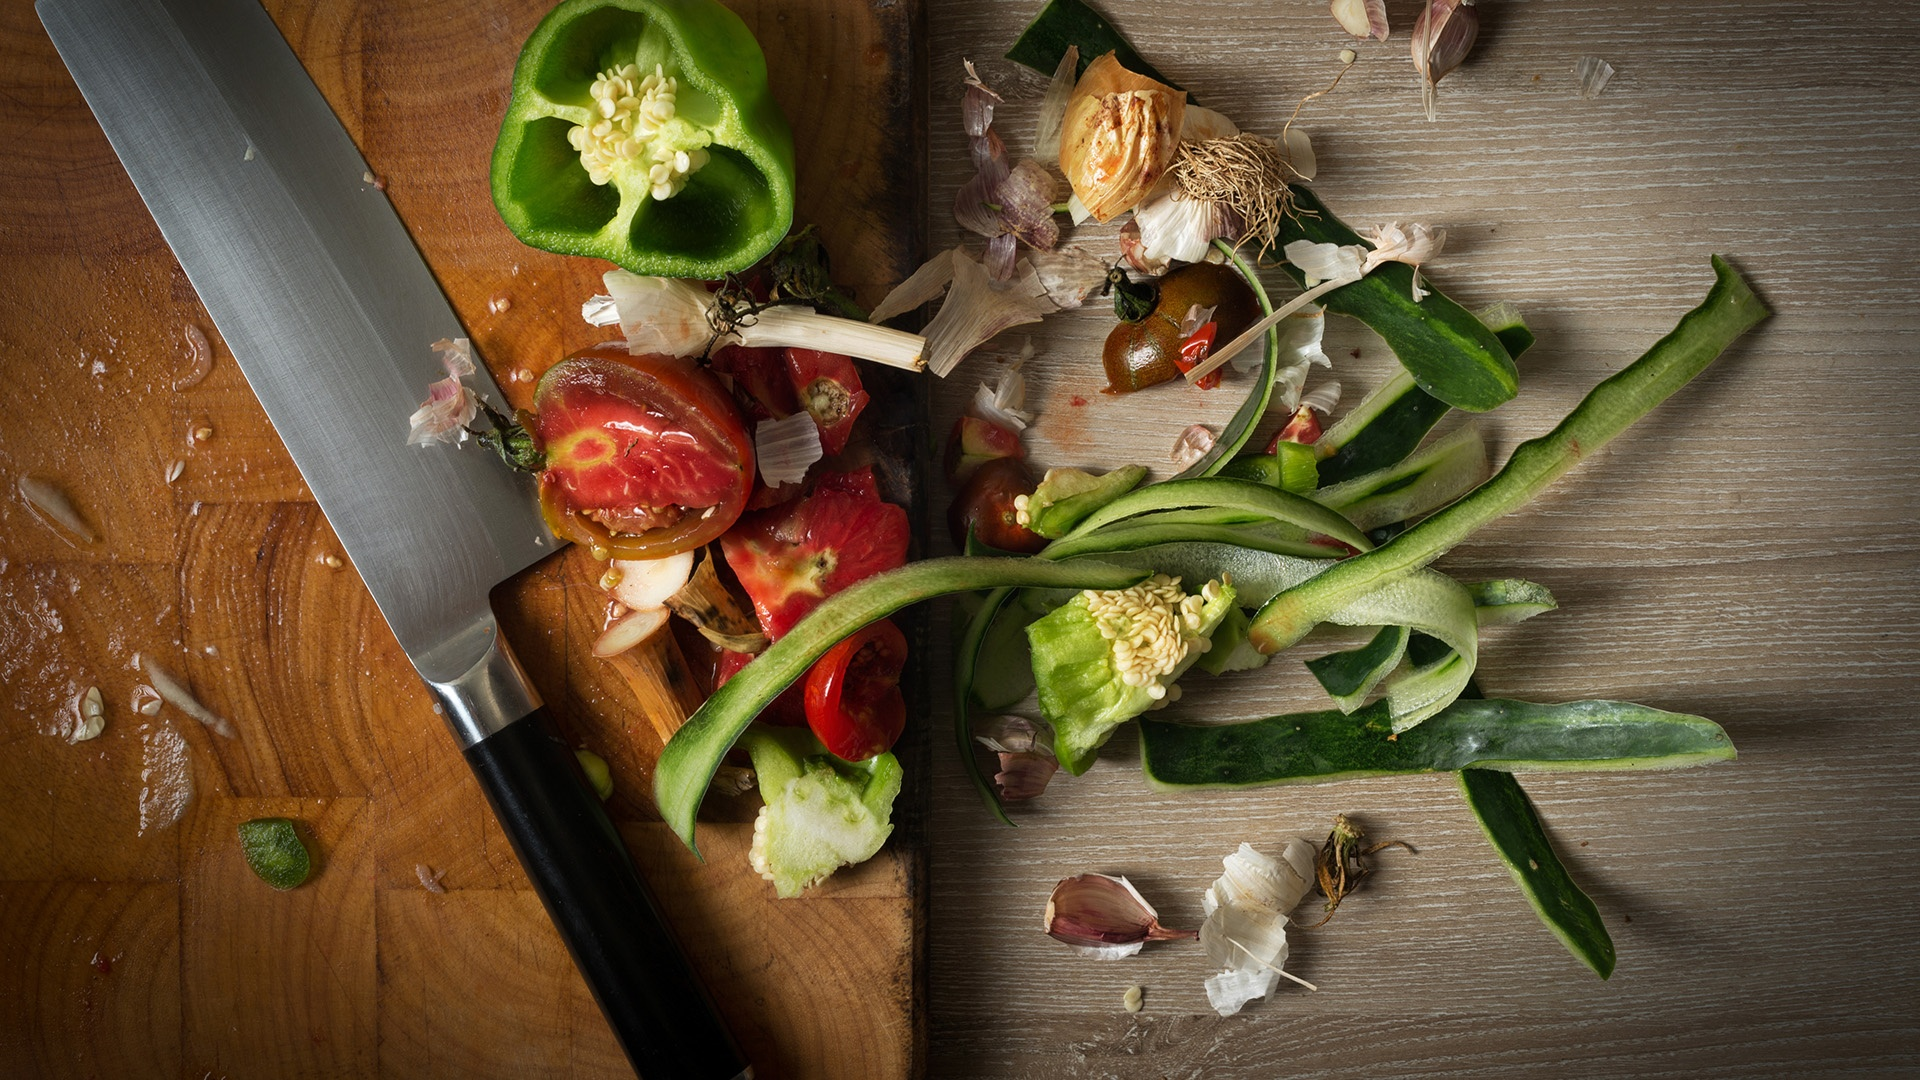 Austin Passes City Ordinance for Food Waste Recycling